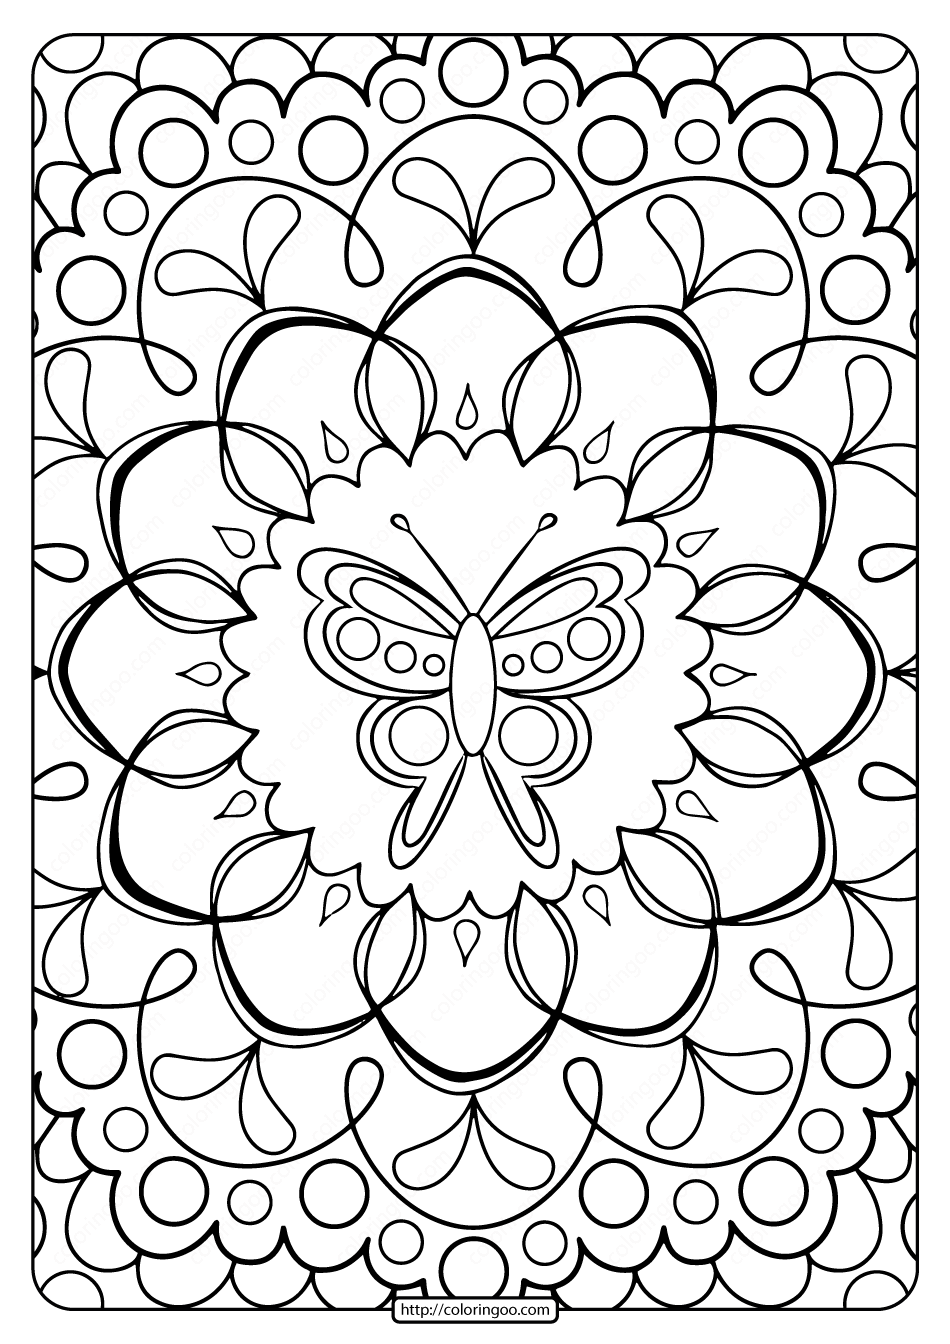 for coloring difficult christmas coloring pages for adults at coloring for